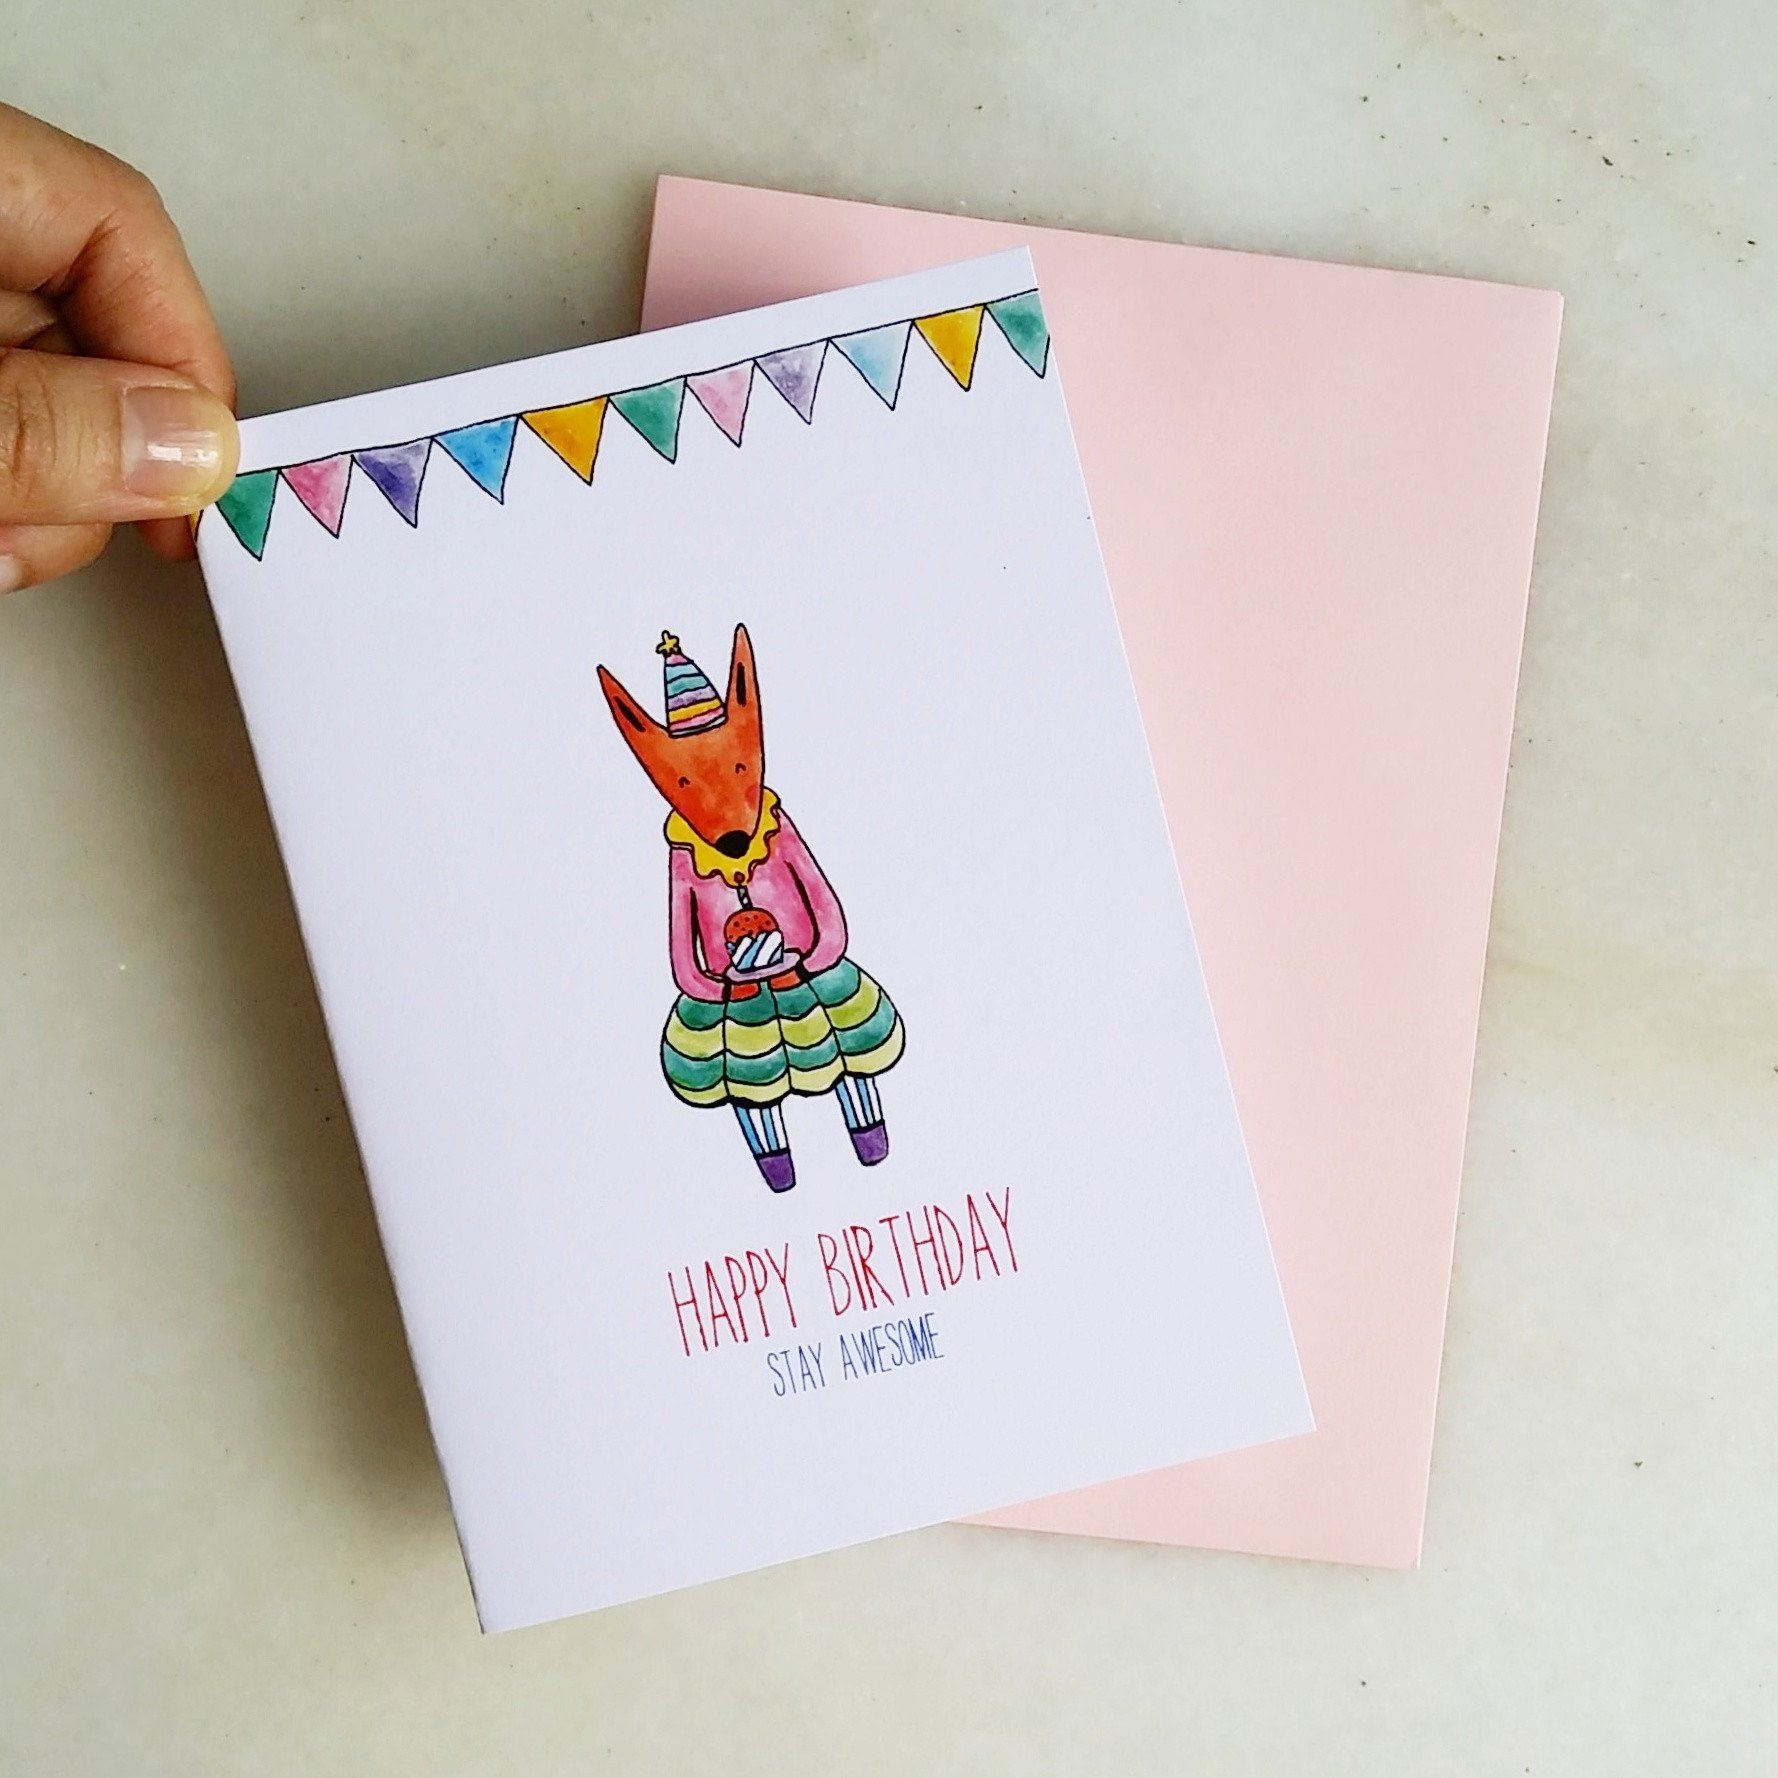 TDGHS Greeting Card - Happy Birthday Stay Awesome Generic Greeting Cards TDGHS